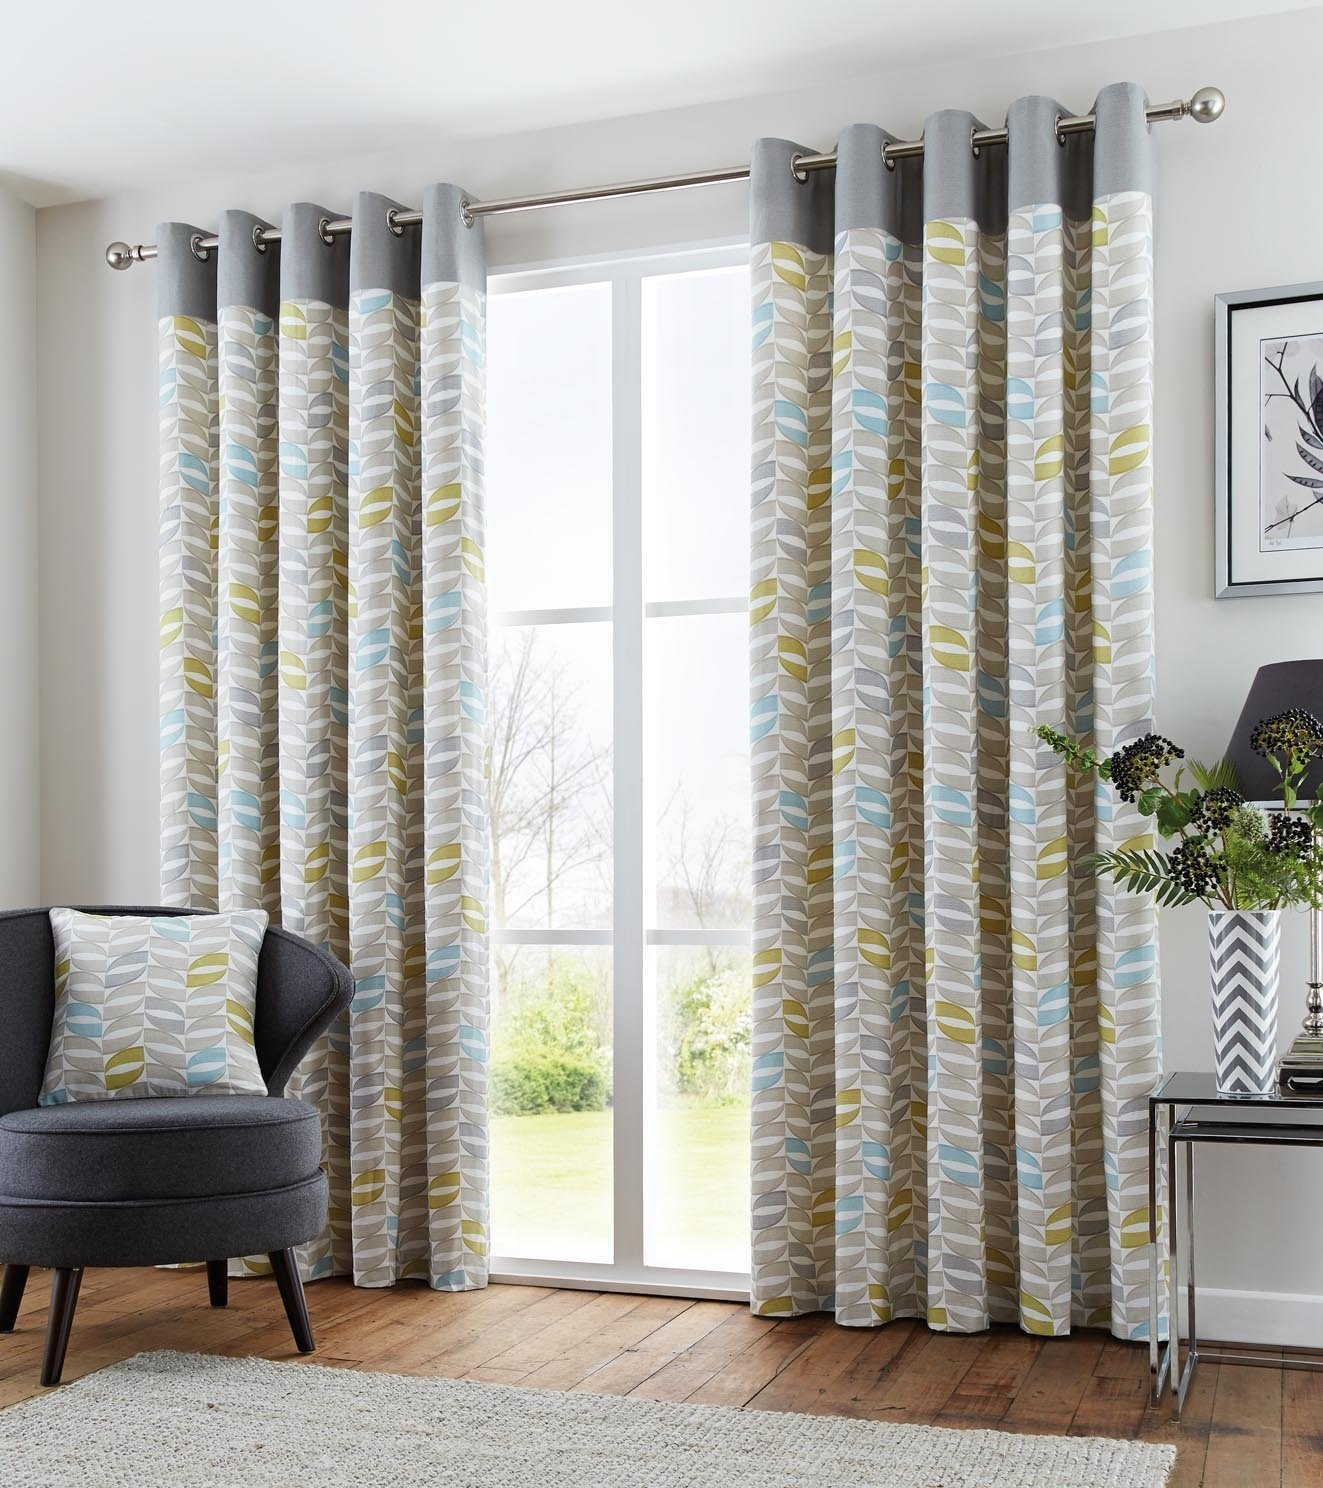 Homescapes 1 Pair Of Morocco Ribbed Stripe Curtains Yellow 72 Throughout 100 Inch Drop Curtains (Image 10 of 15)